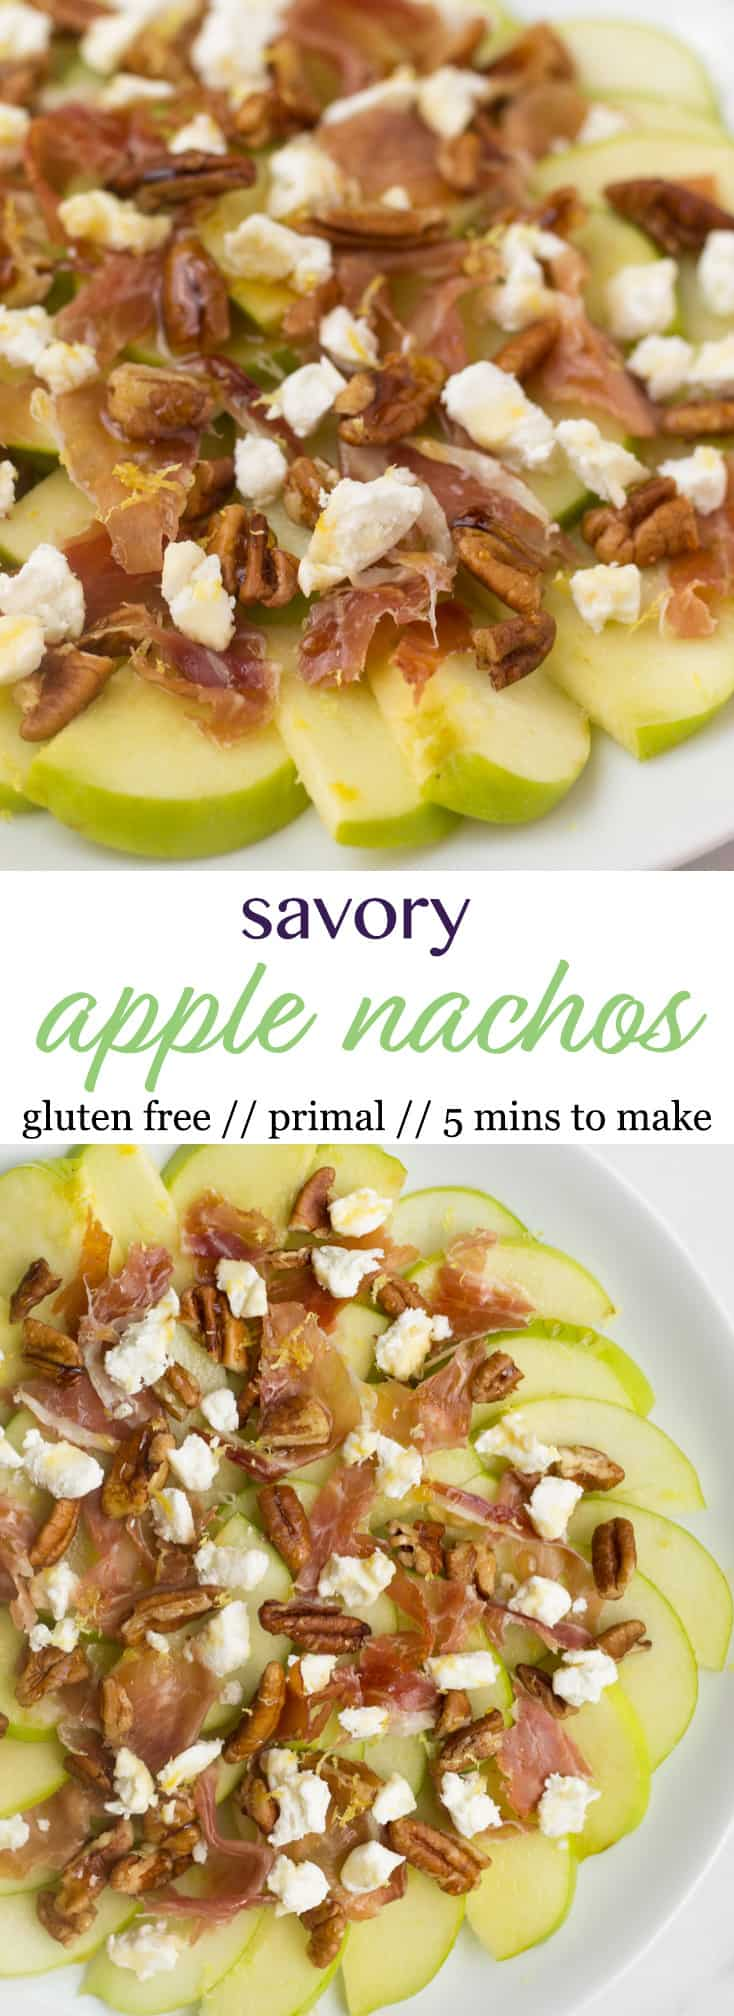 An easy fun fall recipe, these Savory Apple Nachos would be great for different occasions - an after school snack, a laid back get-together, and even a football tailgate! - Eat the Gains